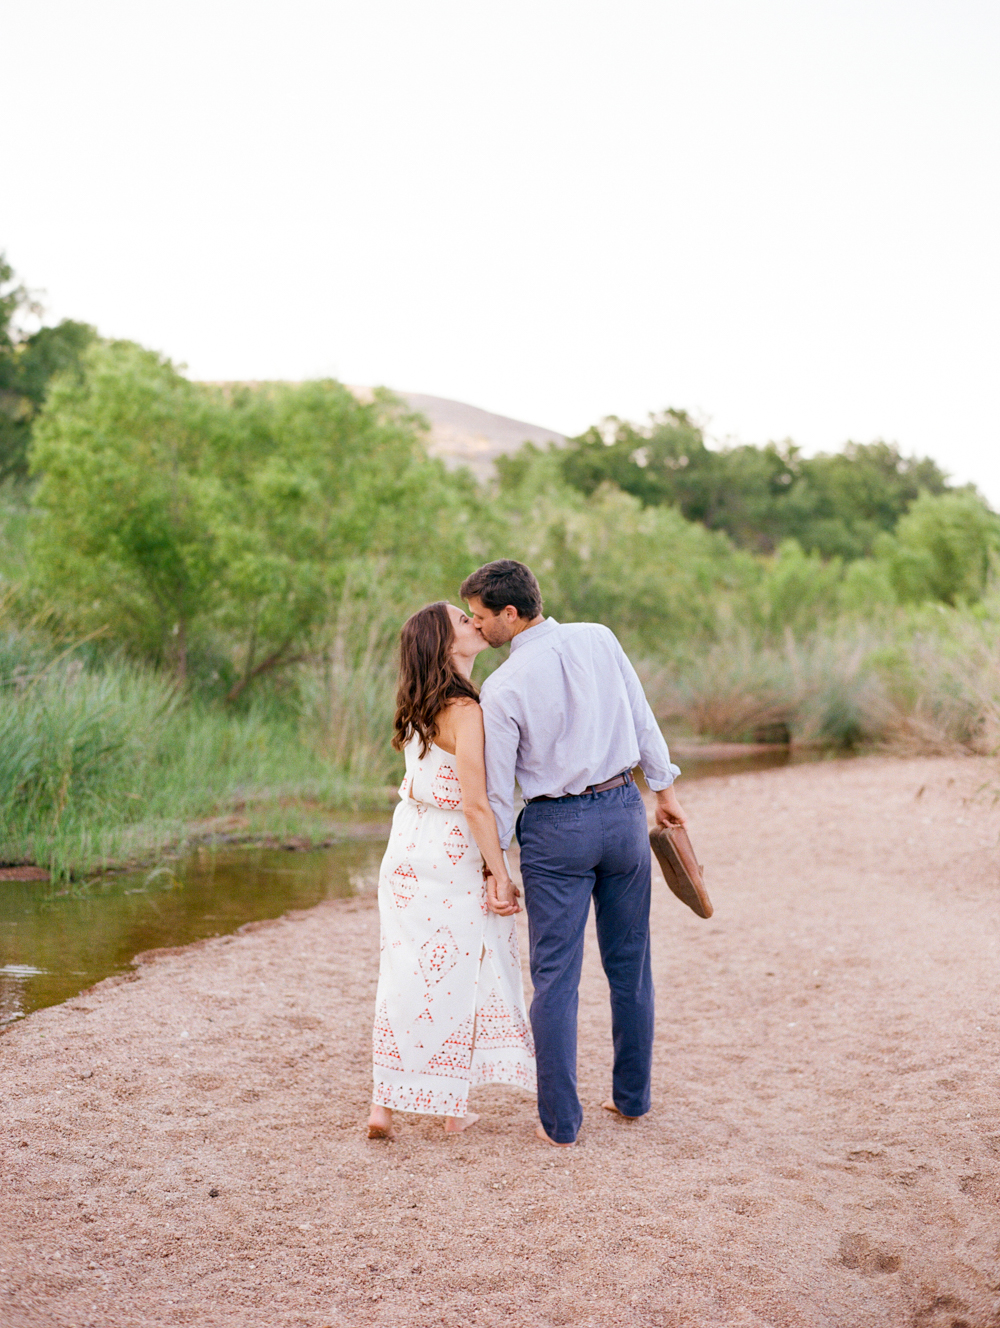 dana fernandez photography enchanted rock engagements photographer austin wedding destination film-21.jpg